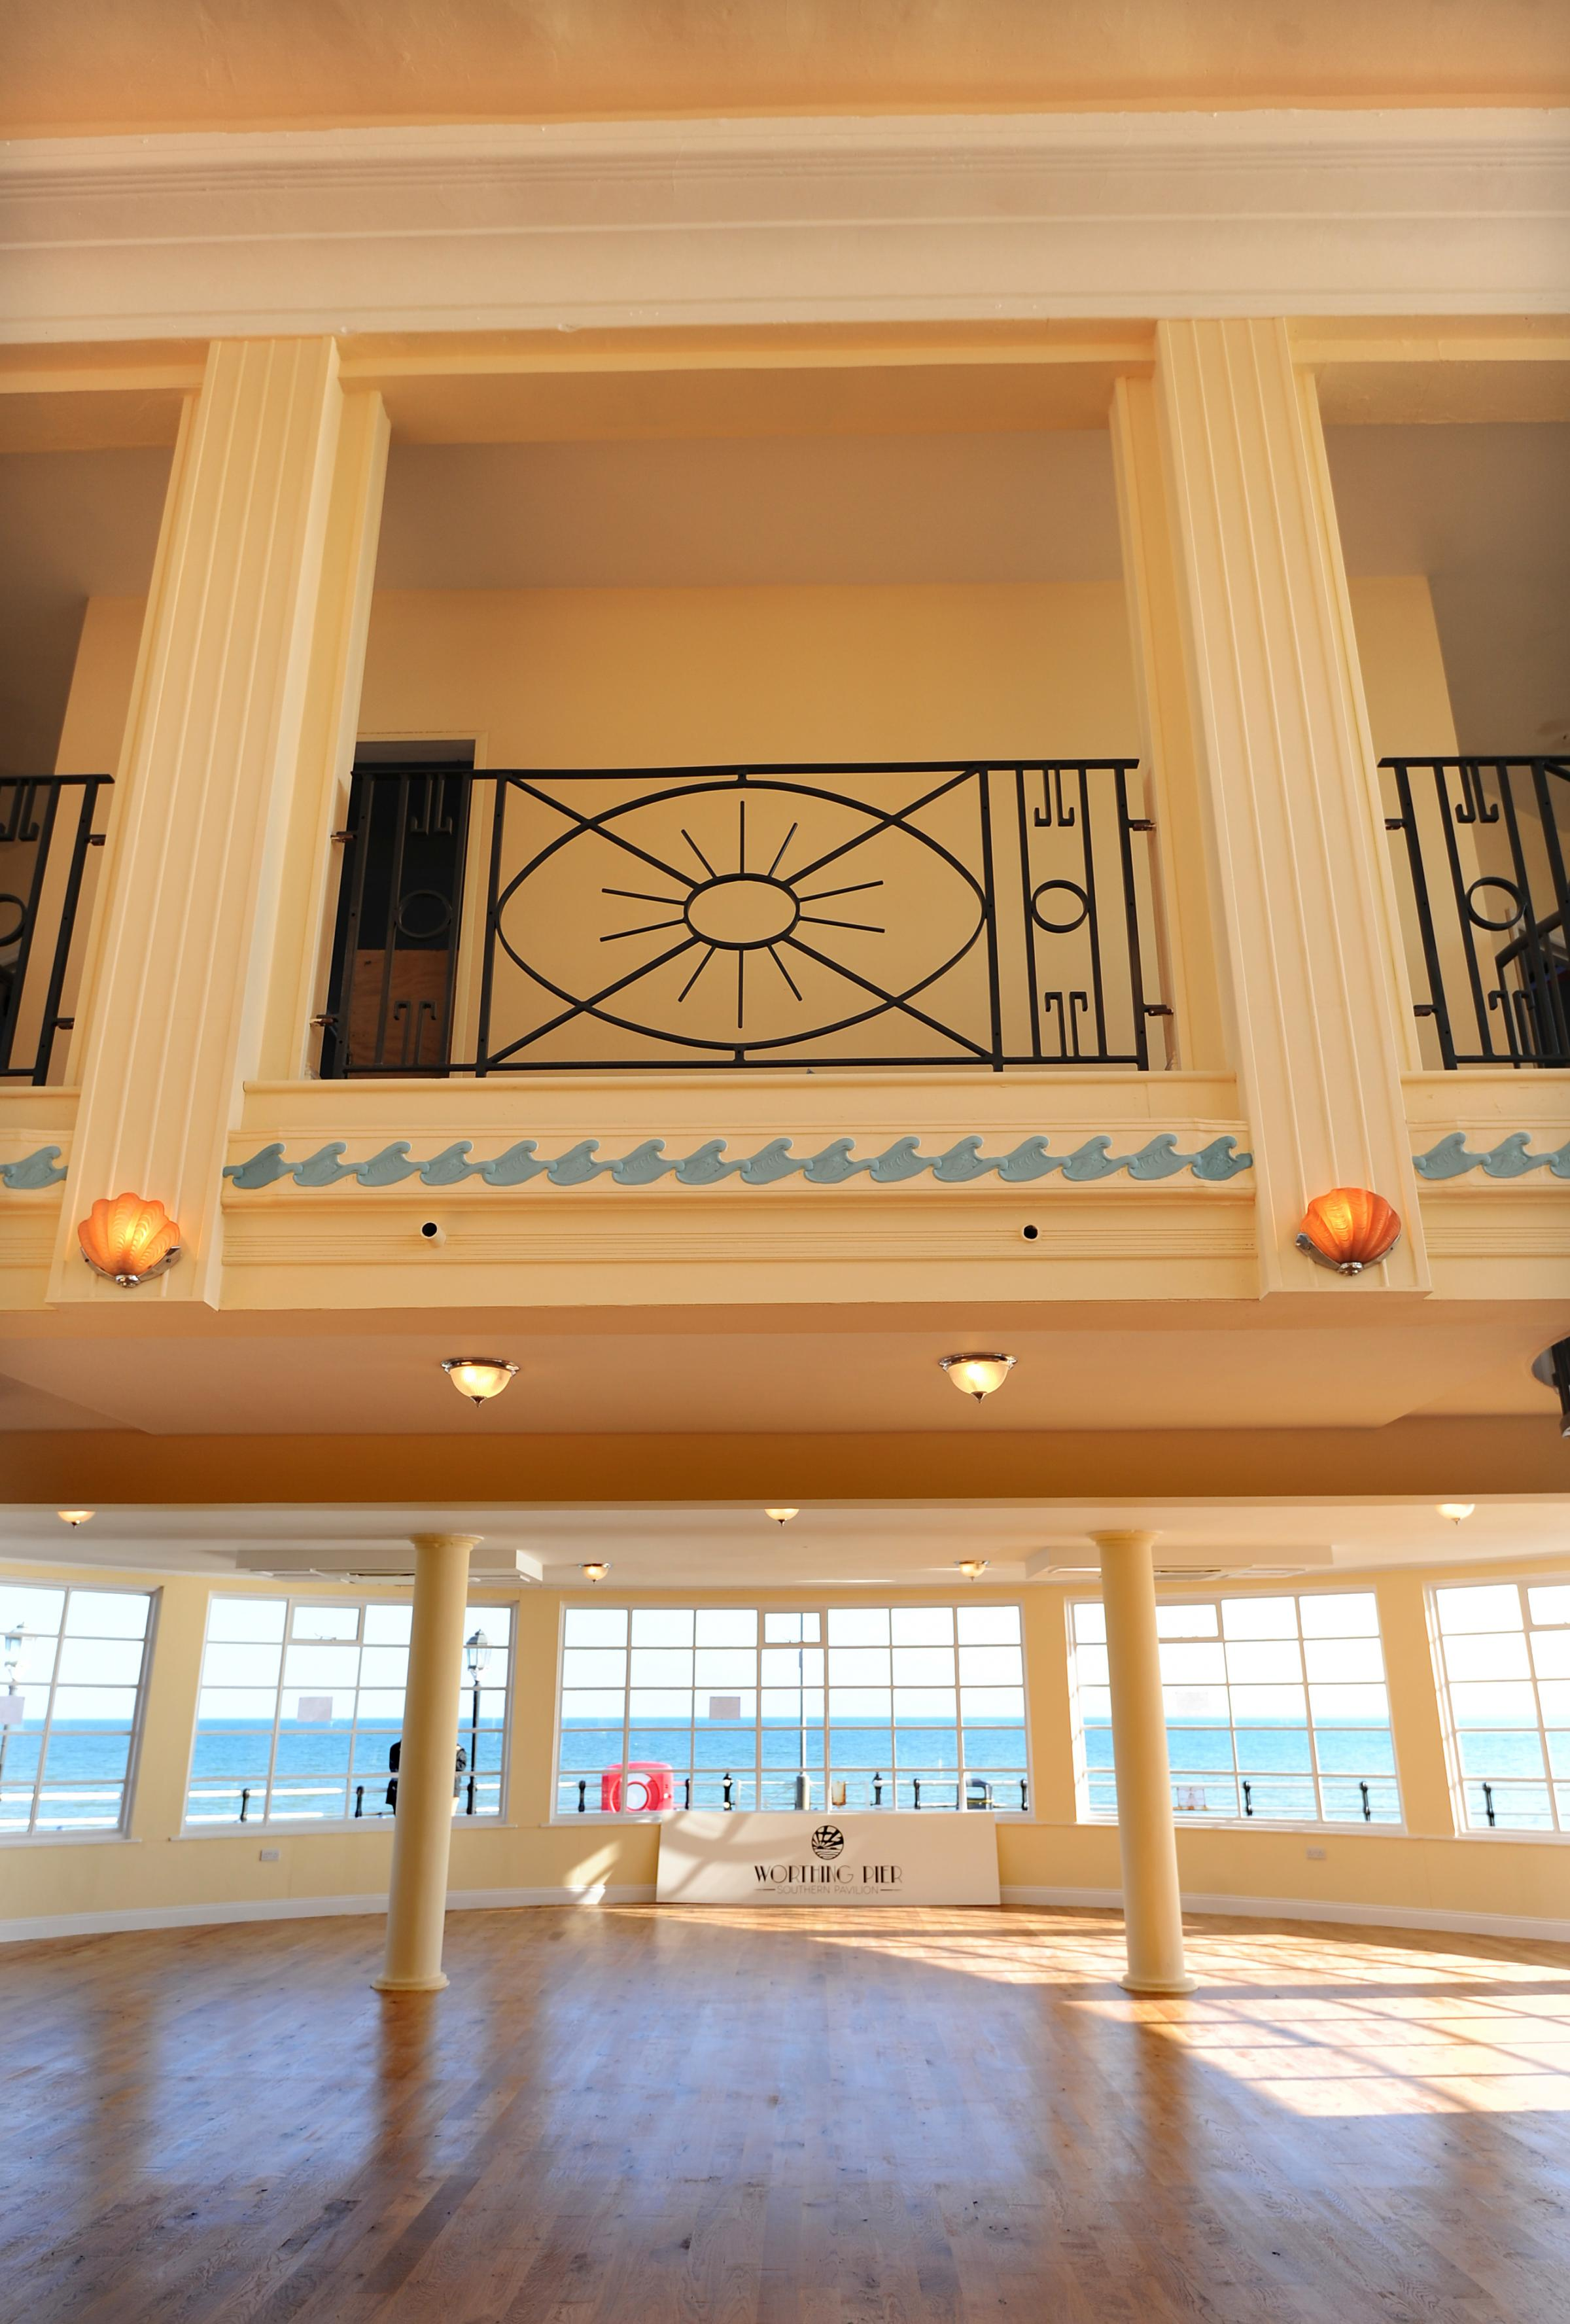 LF160414B1.PHOTO BY LIZ FINLAYSON.The Worthing Pier's southern Pavilion re opens after 3 years - View from inside.